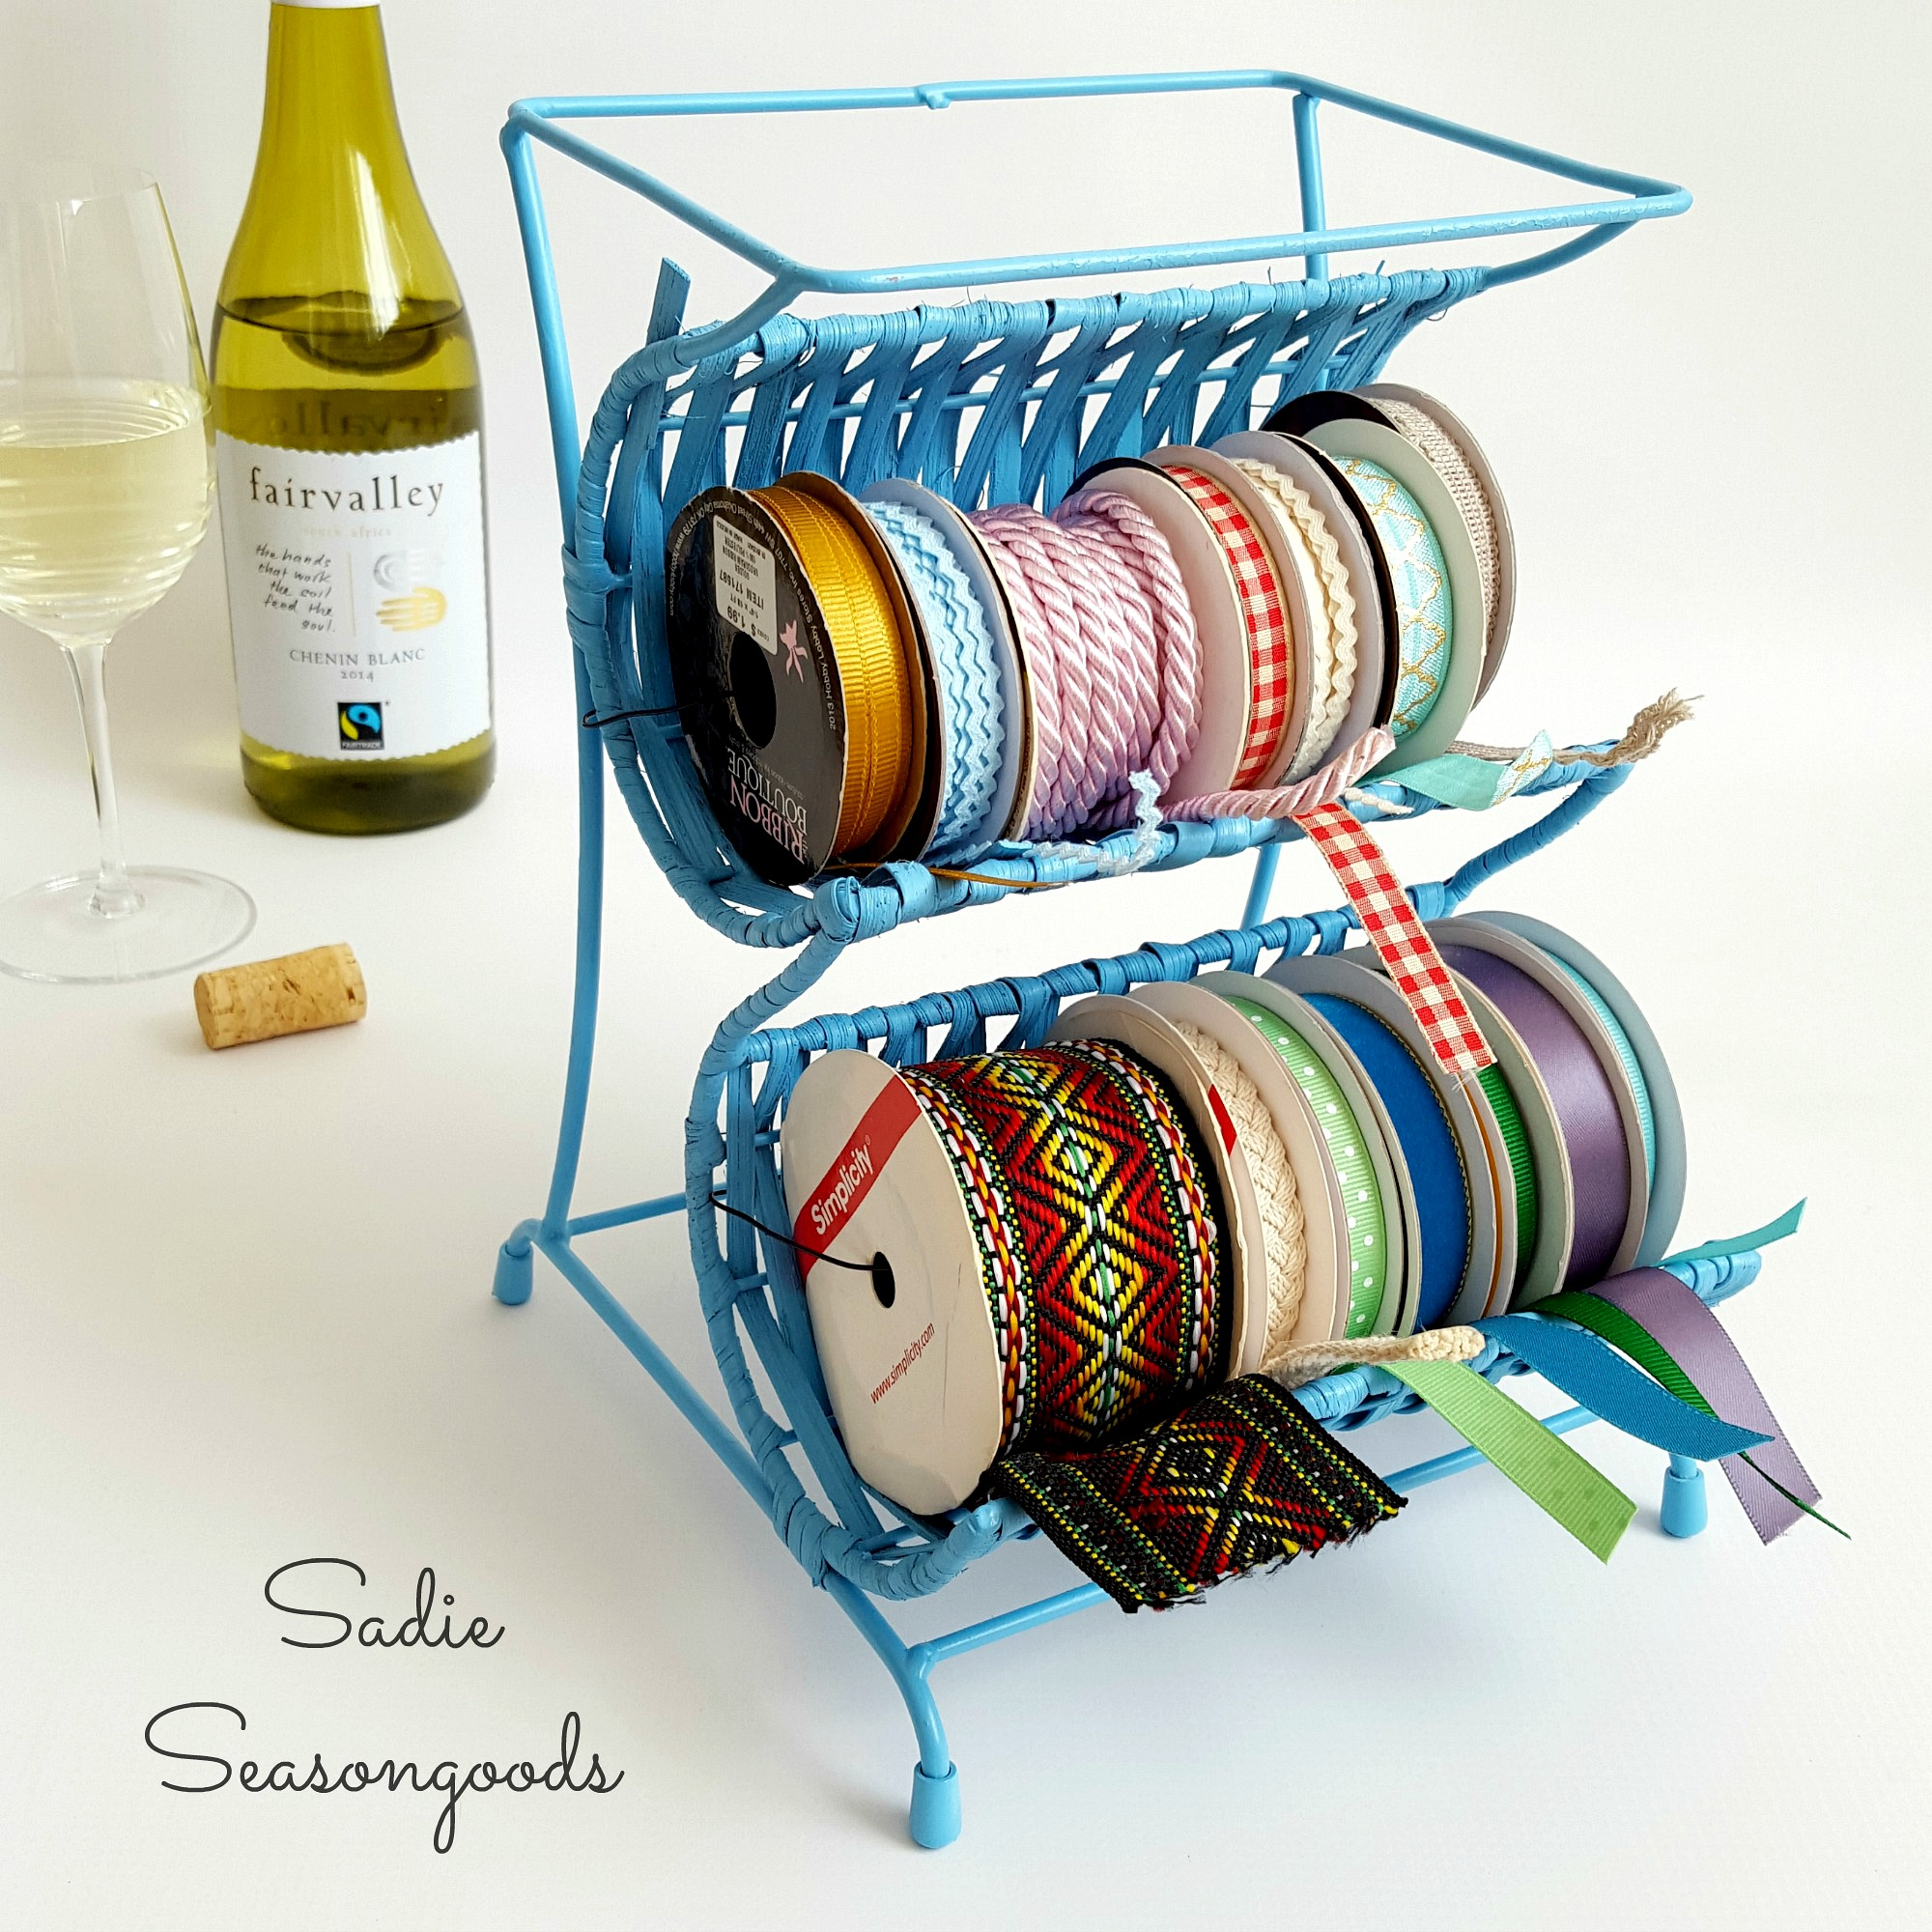 Wine_bottle_holder_repurposed_into_craft_ribbon_cradle_holder_Sadie_Seasongoods